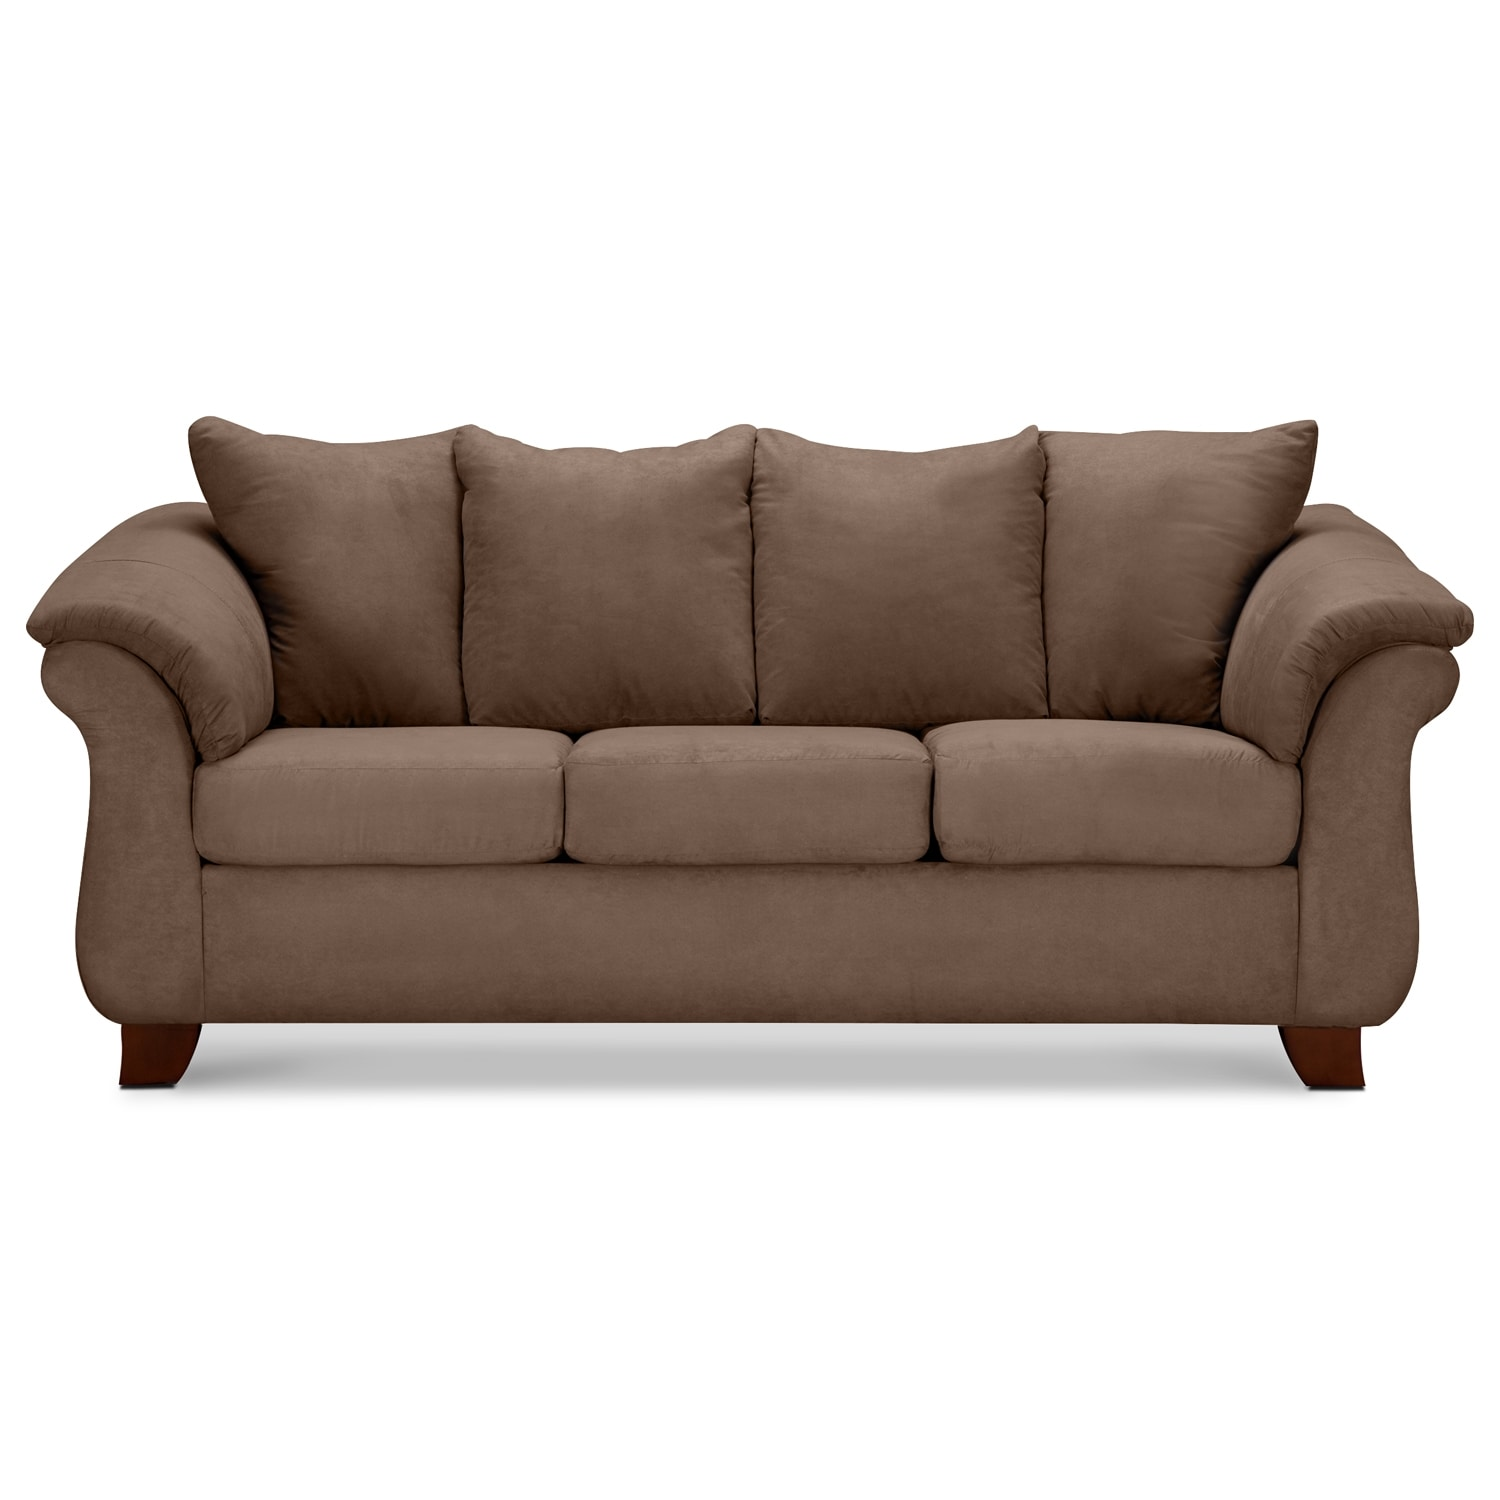 Adrian sofa taupe value city furniture for Couch and loveseat